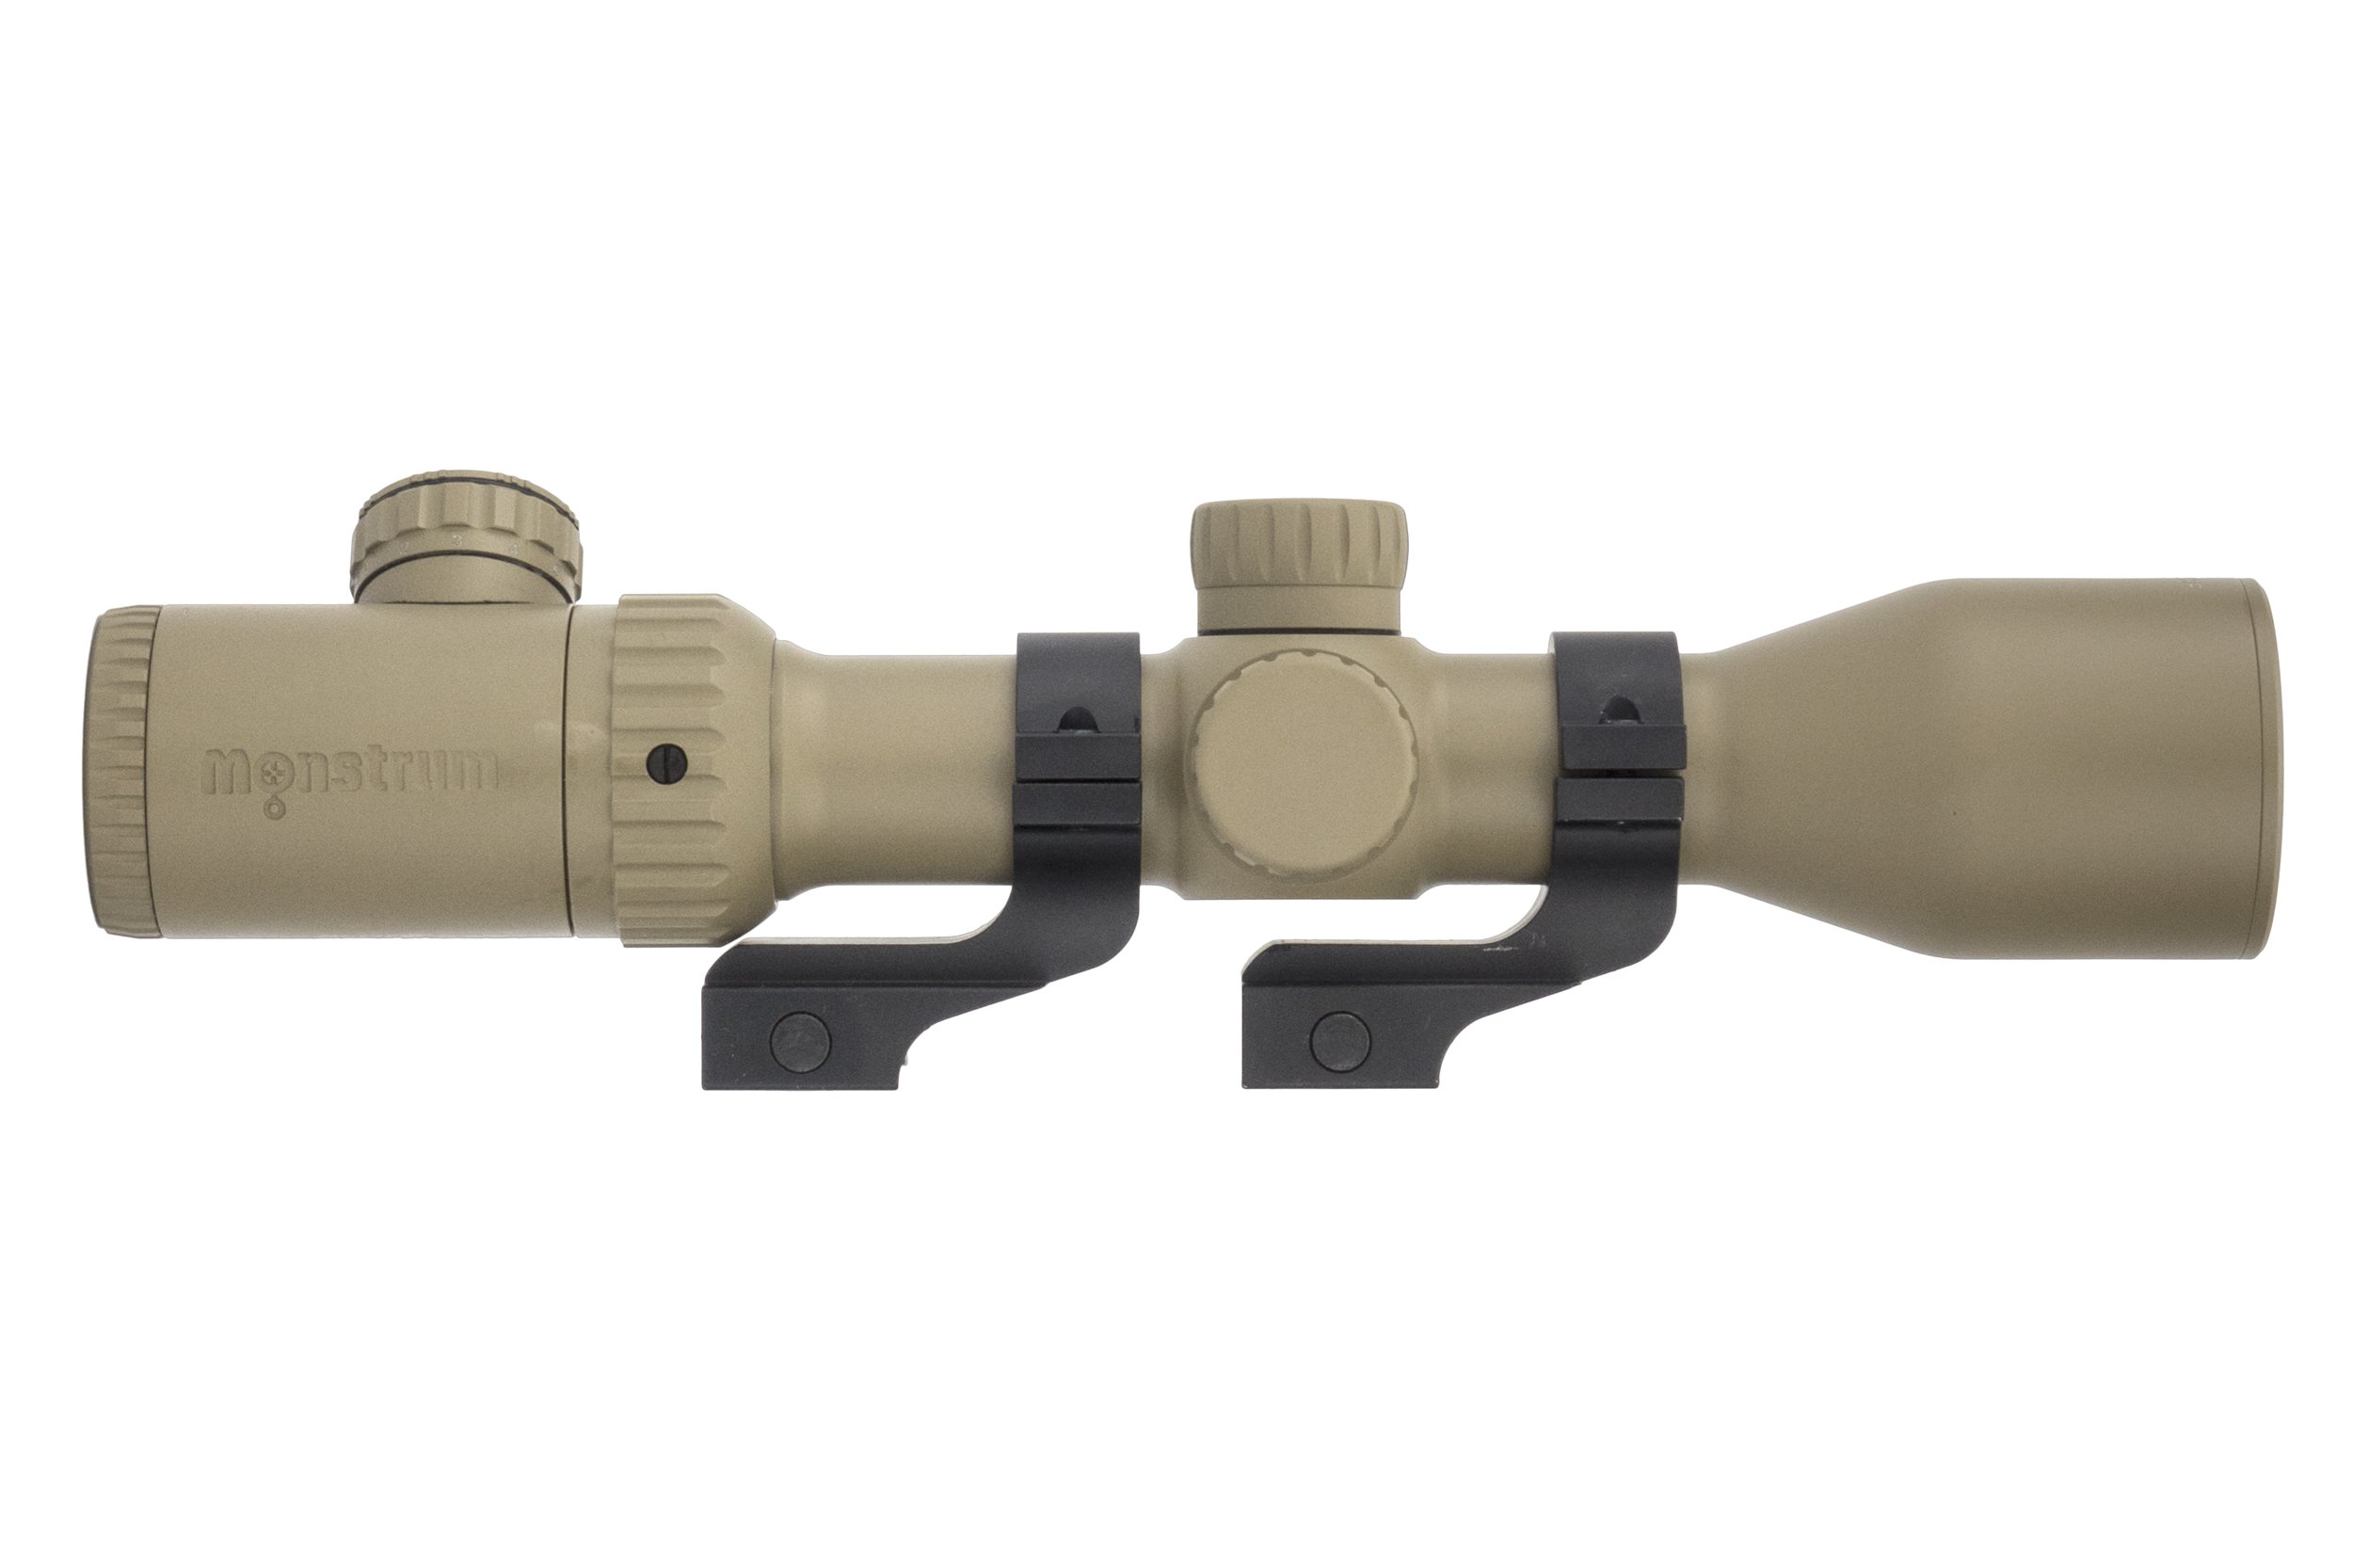 Monstrum Tactical 3-12x42 AO Rifle Scope with Illuminated Mil-Dot Reticle and Offset Reversible Scope Rings (Flat Dark Earth)